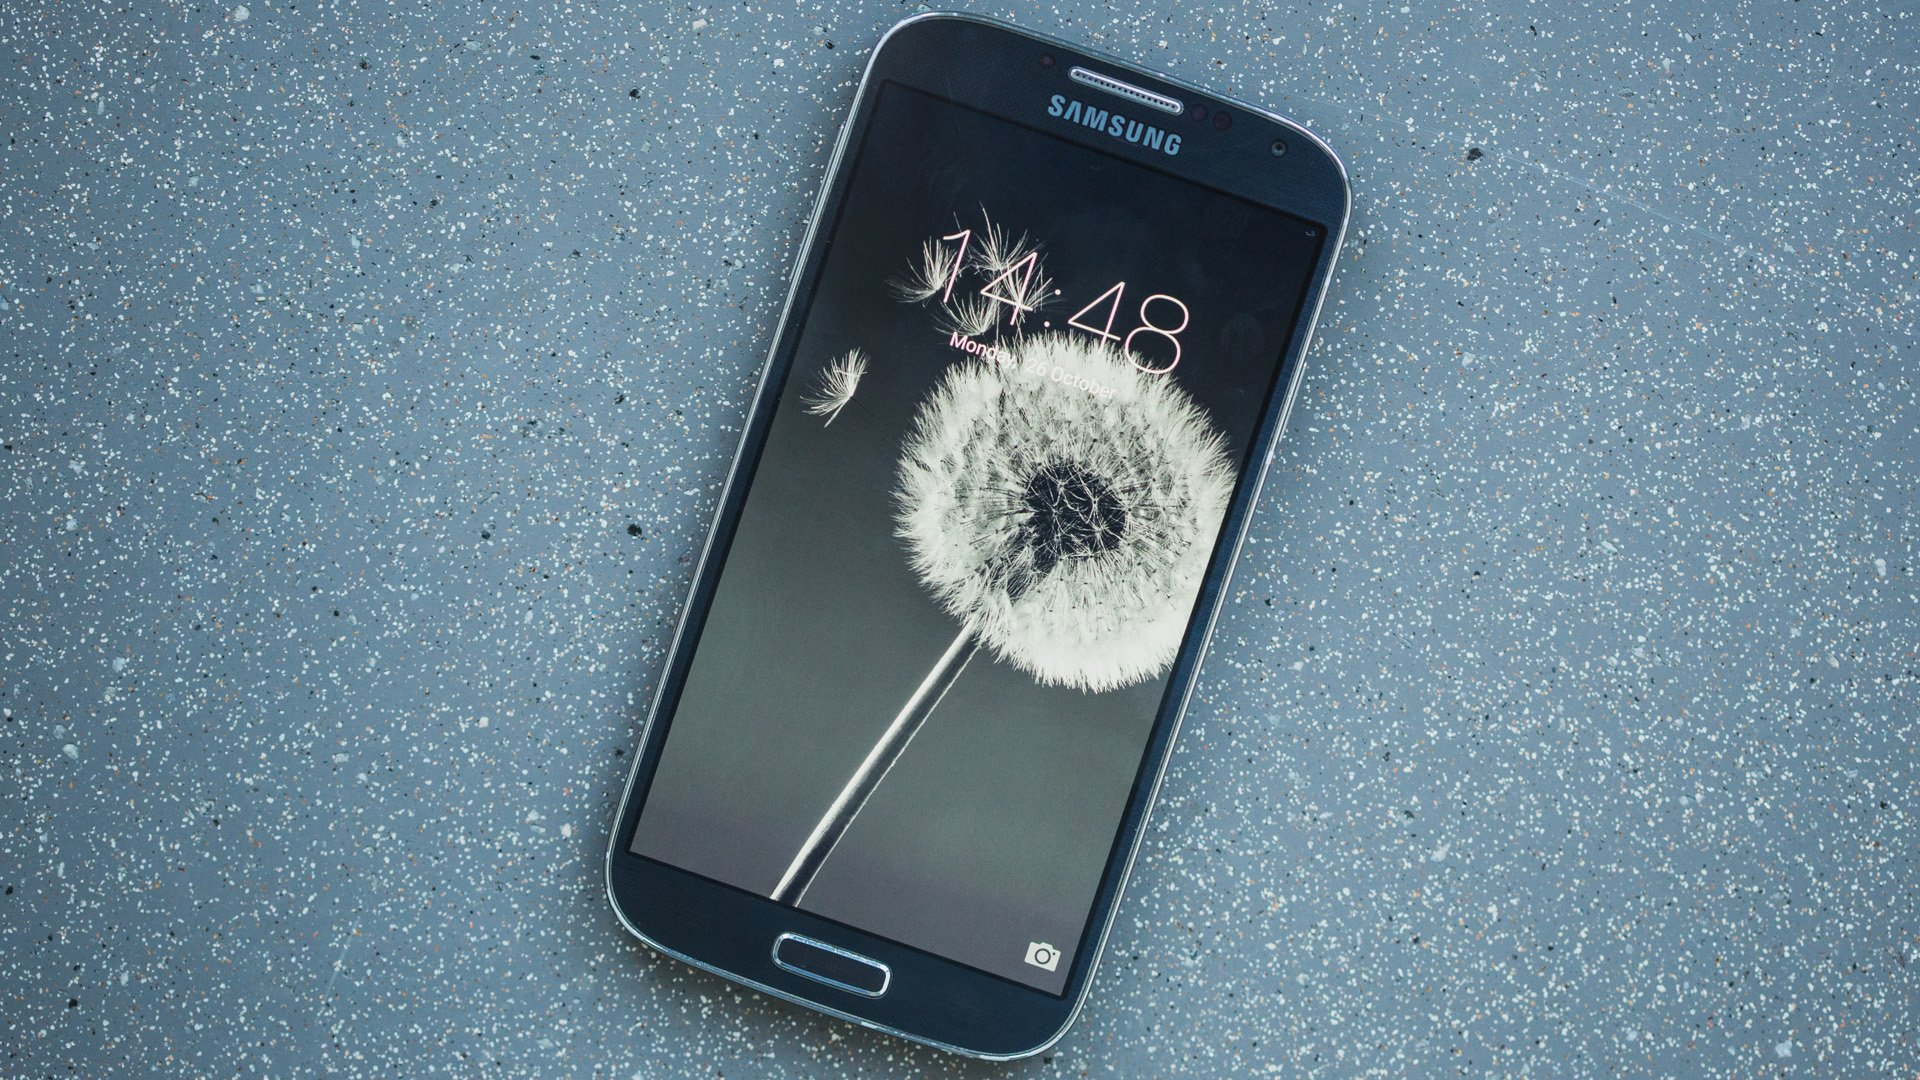 How To Fix Camera Failed Problem On Galaxy S4 Androidpit